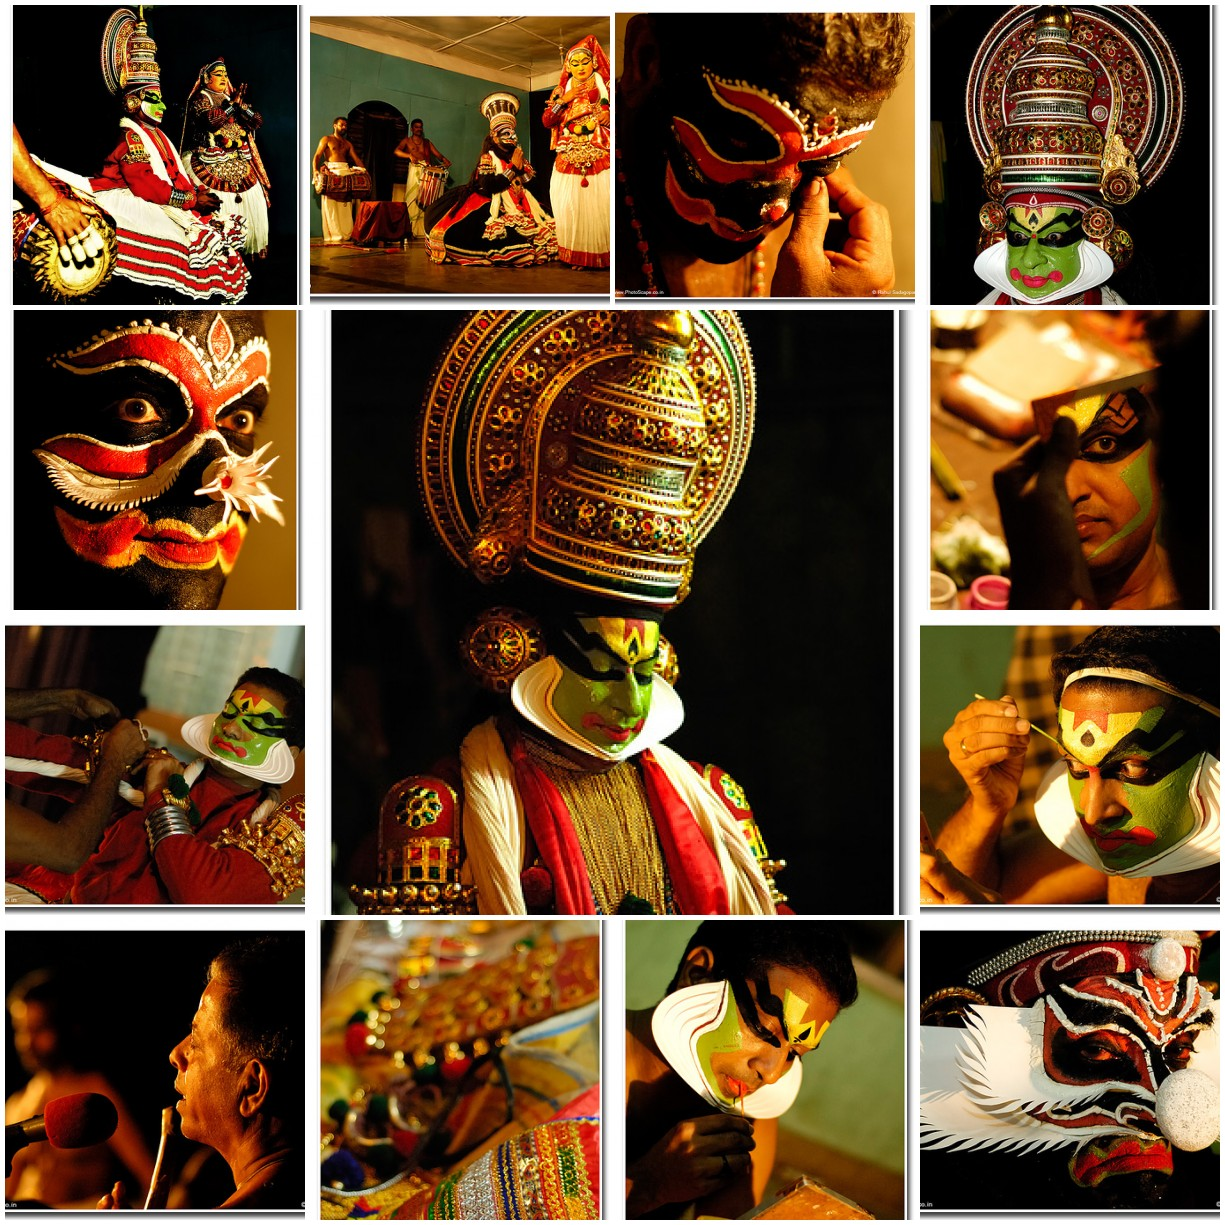 Kathakali: the Confluence of Dance, Music, Theatre and